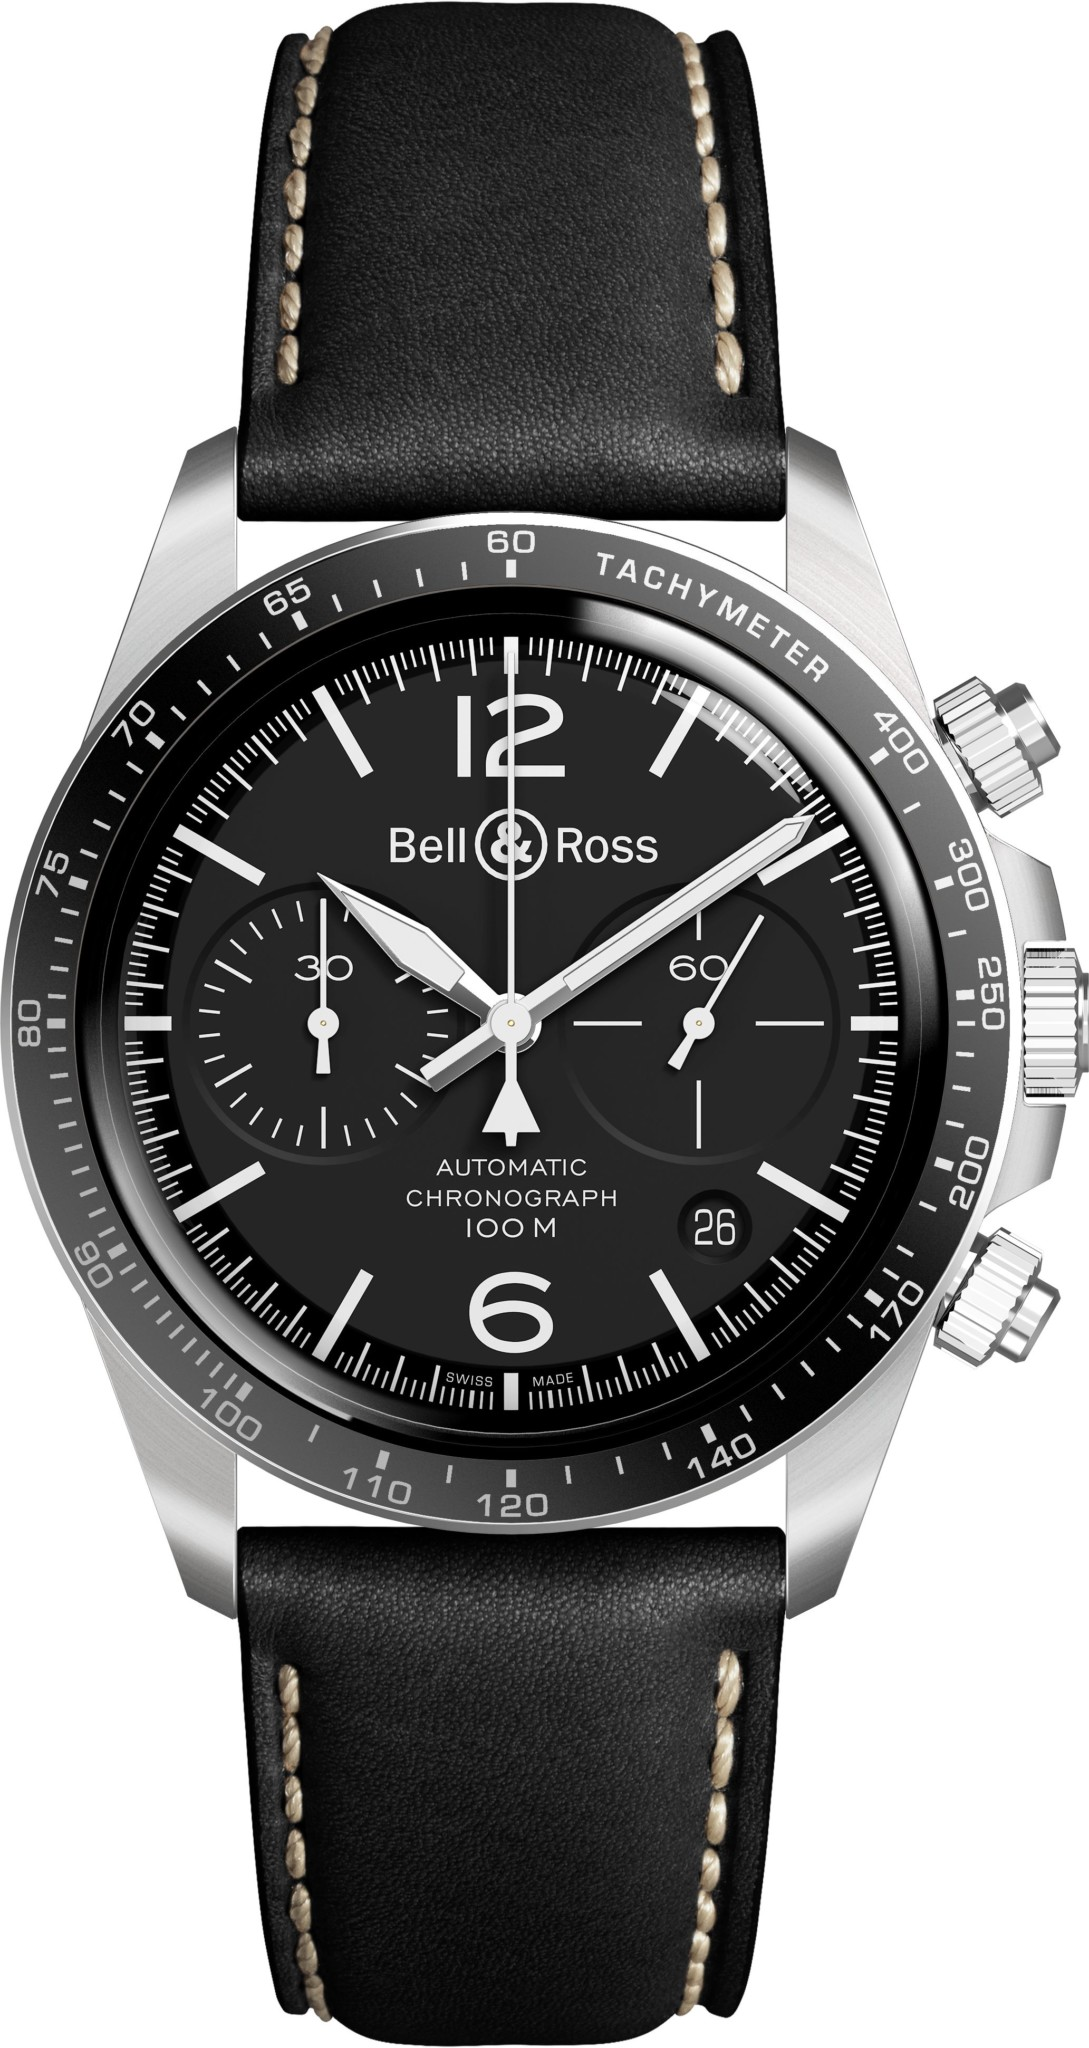 Bell and Ross -V2-94-Black-LEATHER